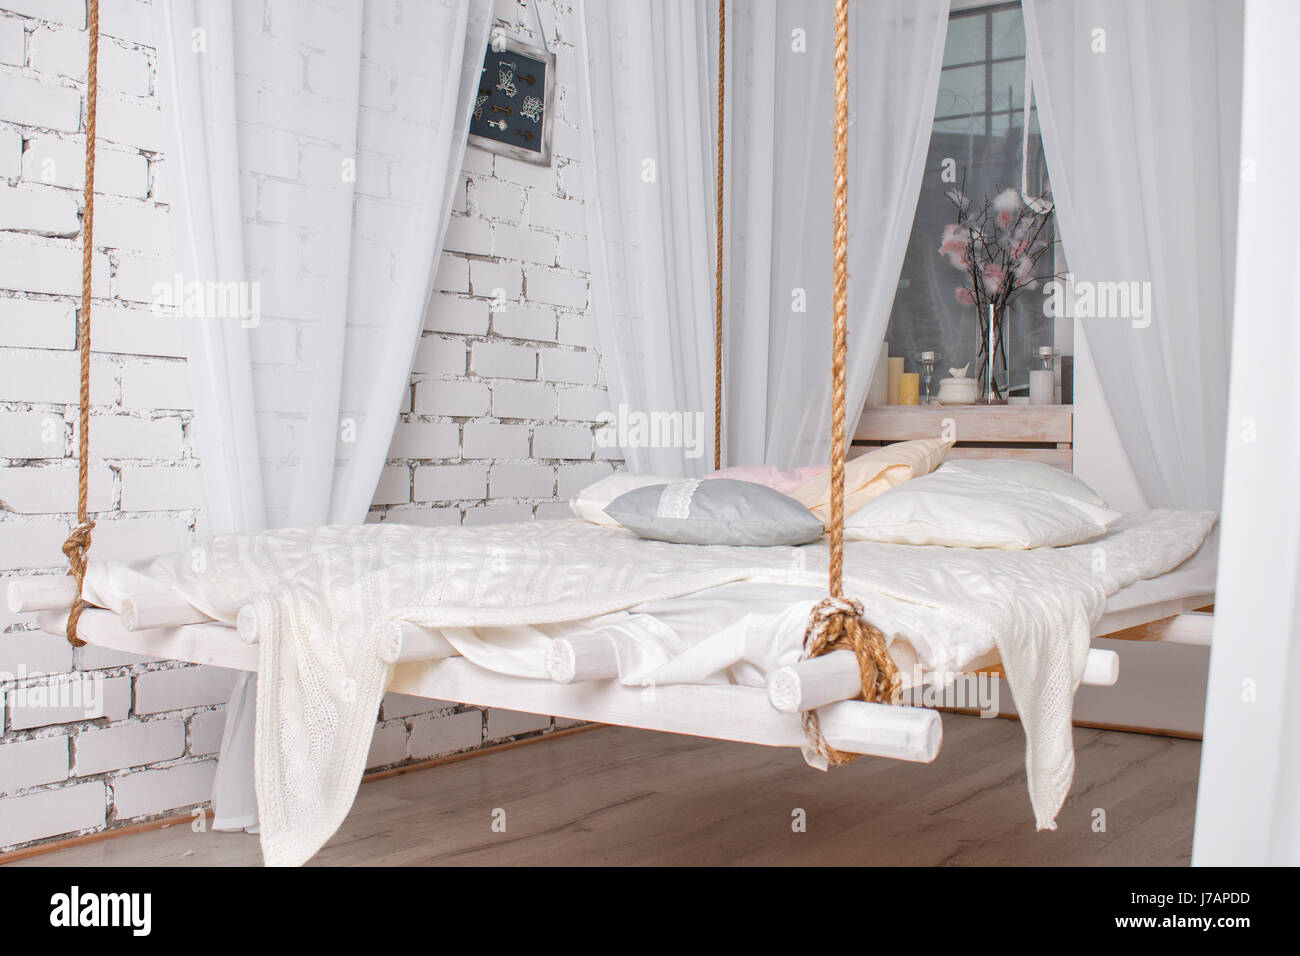 Bed Suspended From Ceiling Suspended Ceiling Stock Photos And Suspended Ceiling Stock